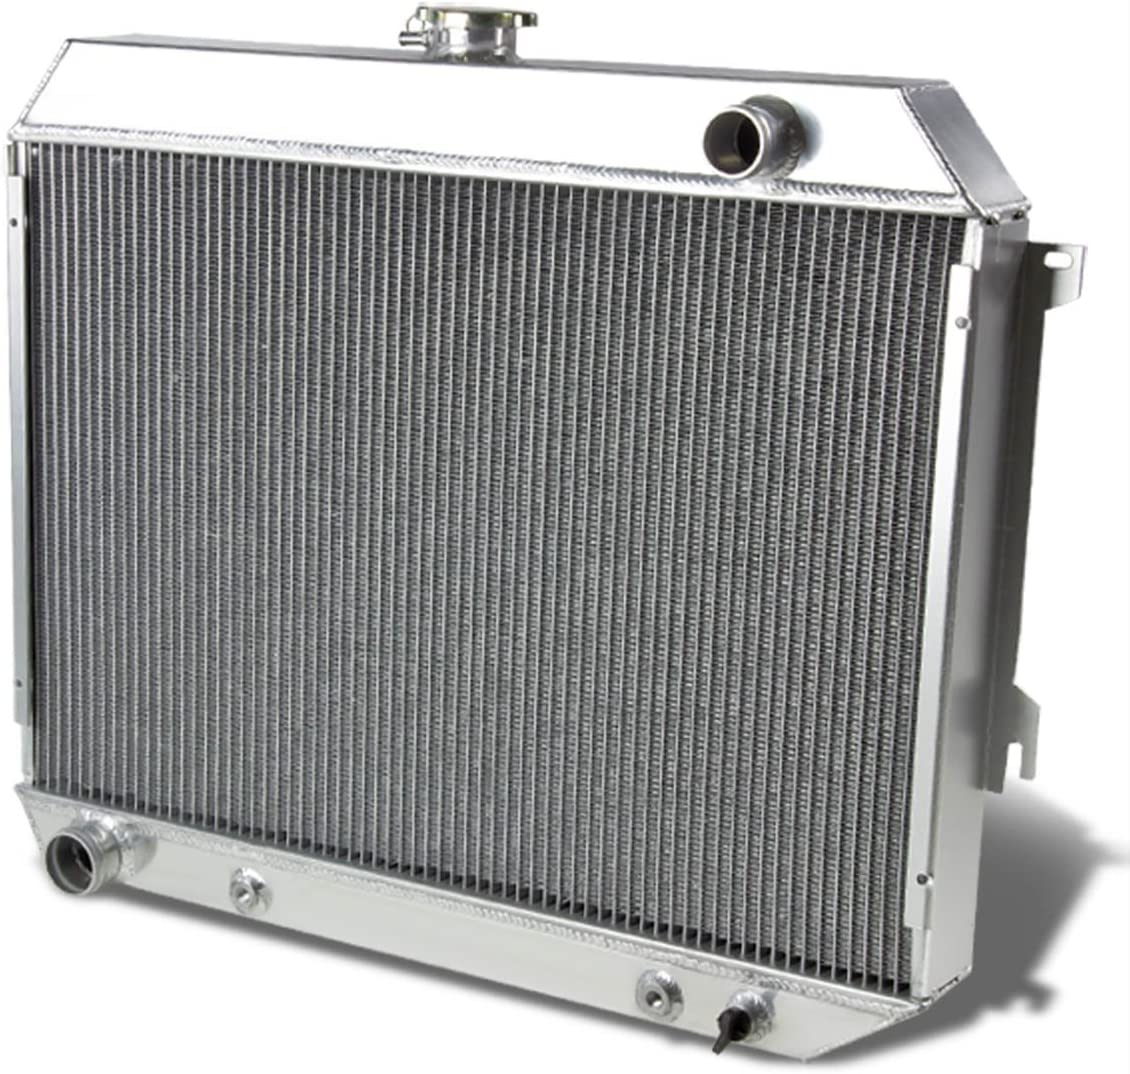 3 ROWS ALUMINUM RADIATOR for Dodge Charger 1968-1974 Plymouth GTX 2 Fans